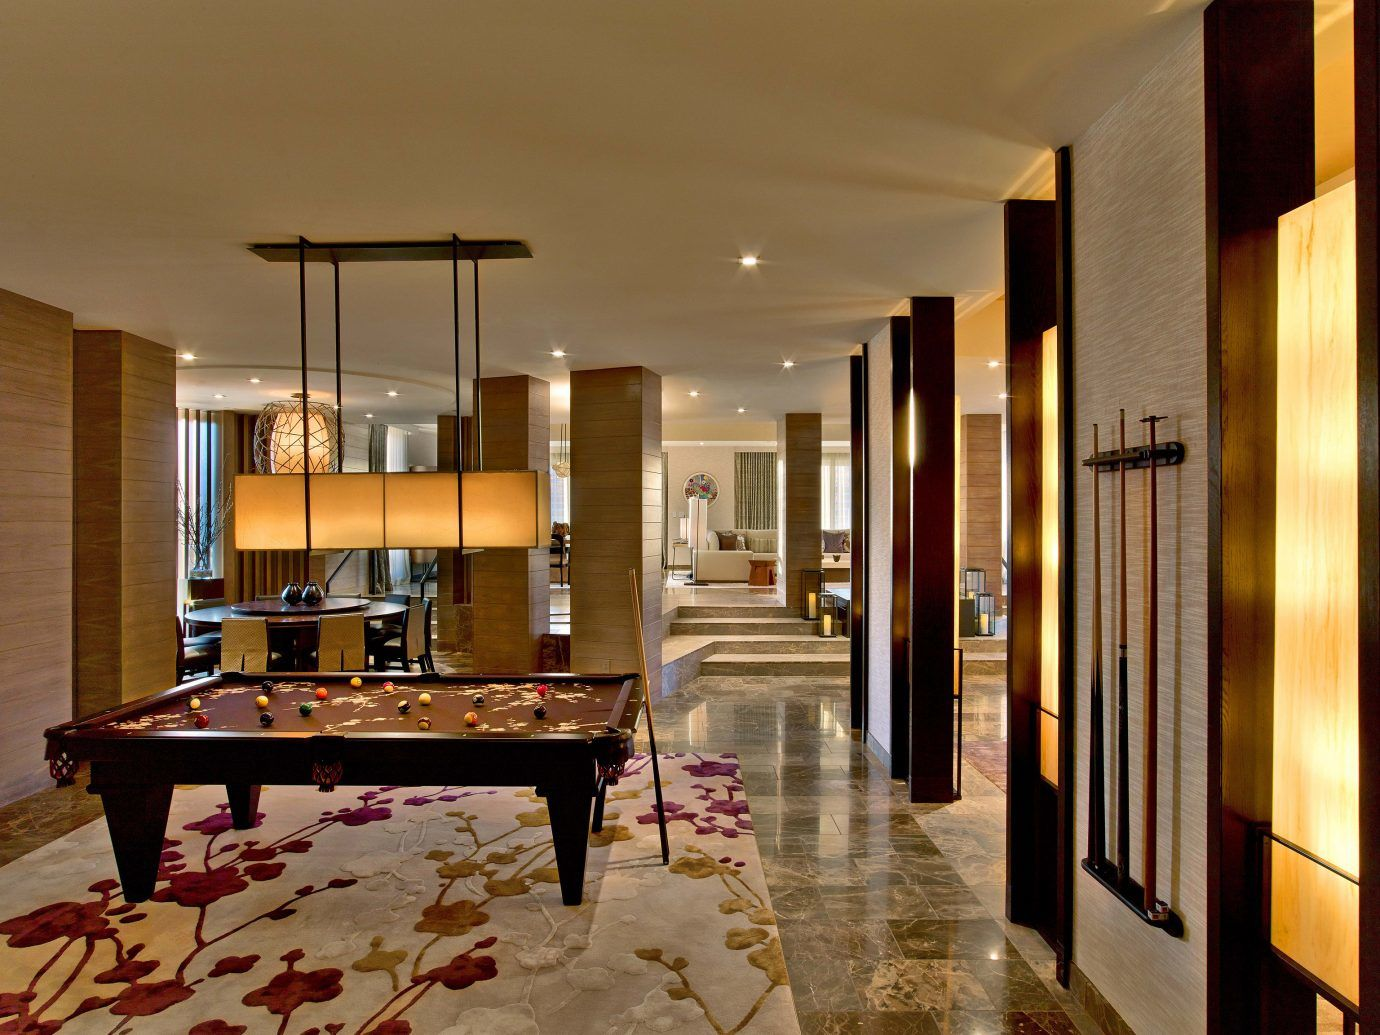 nobu villa hotel. One of the most expensive hotels in las vegas - matini hotels